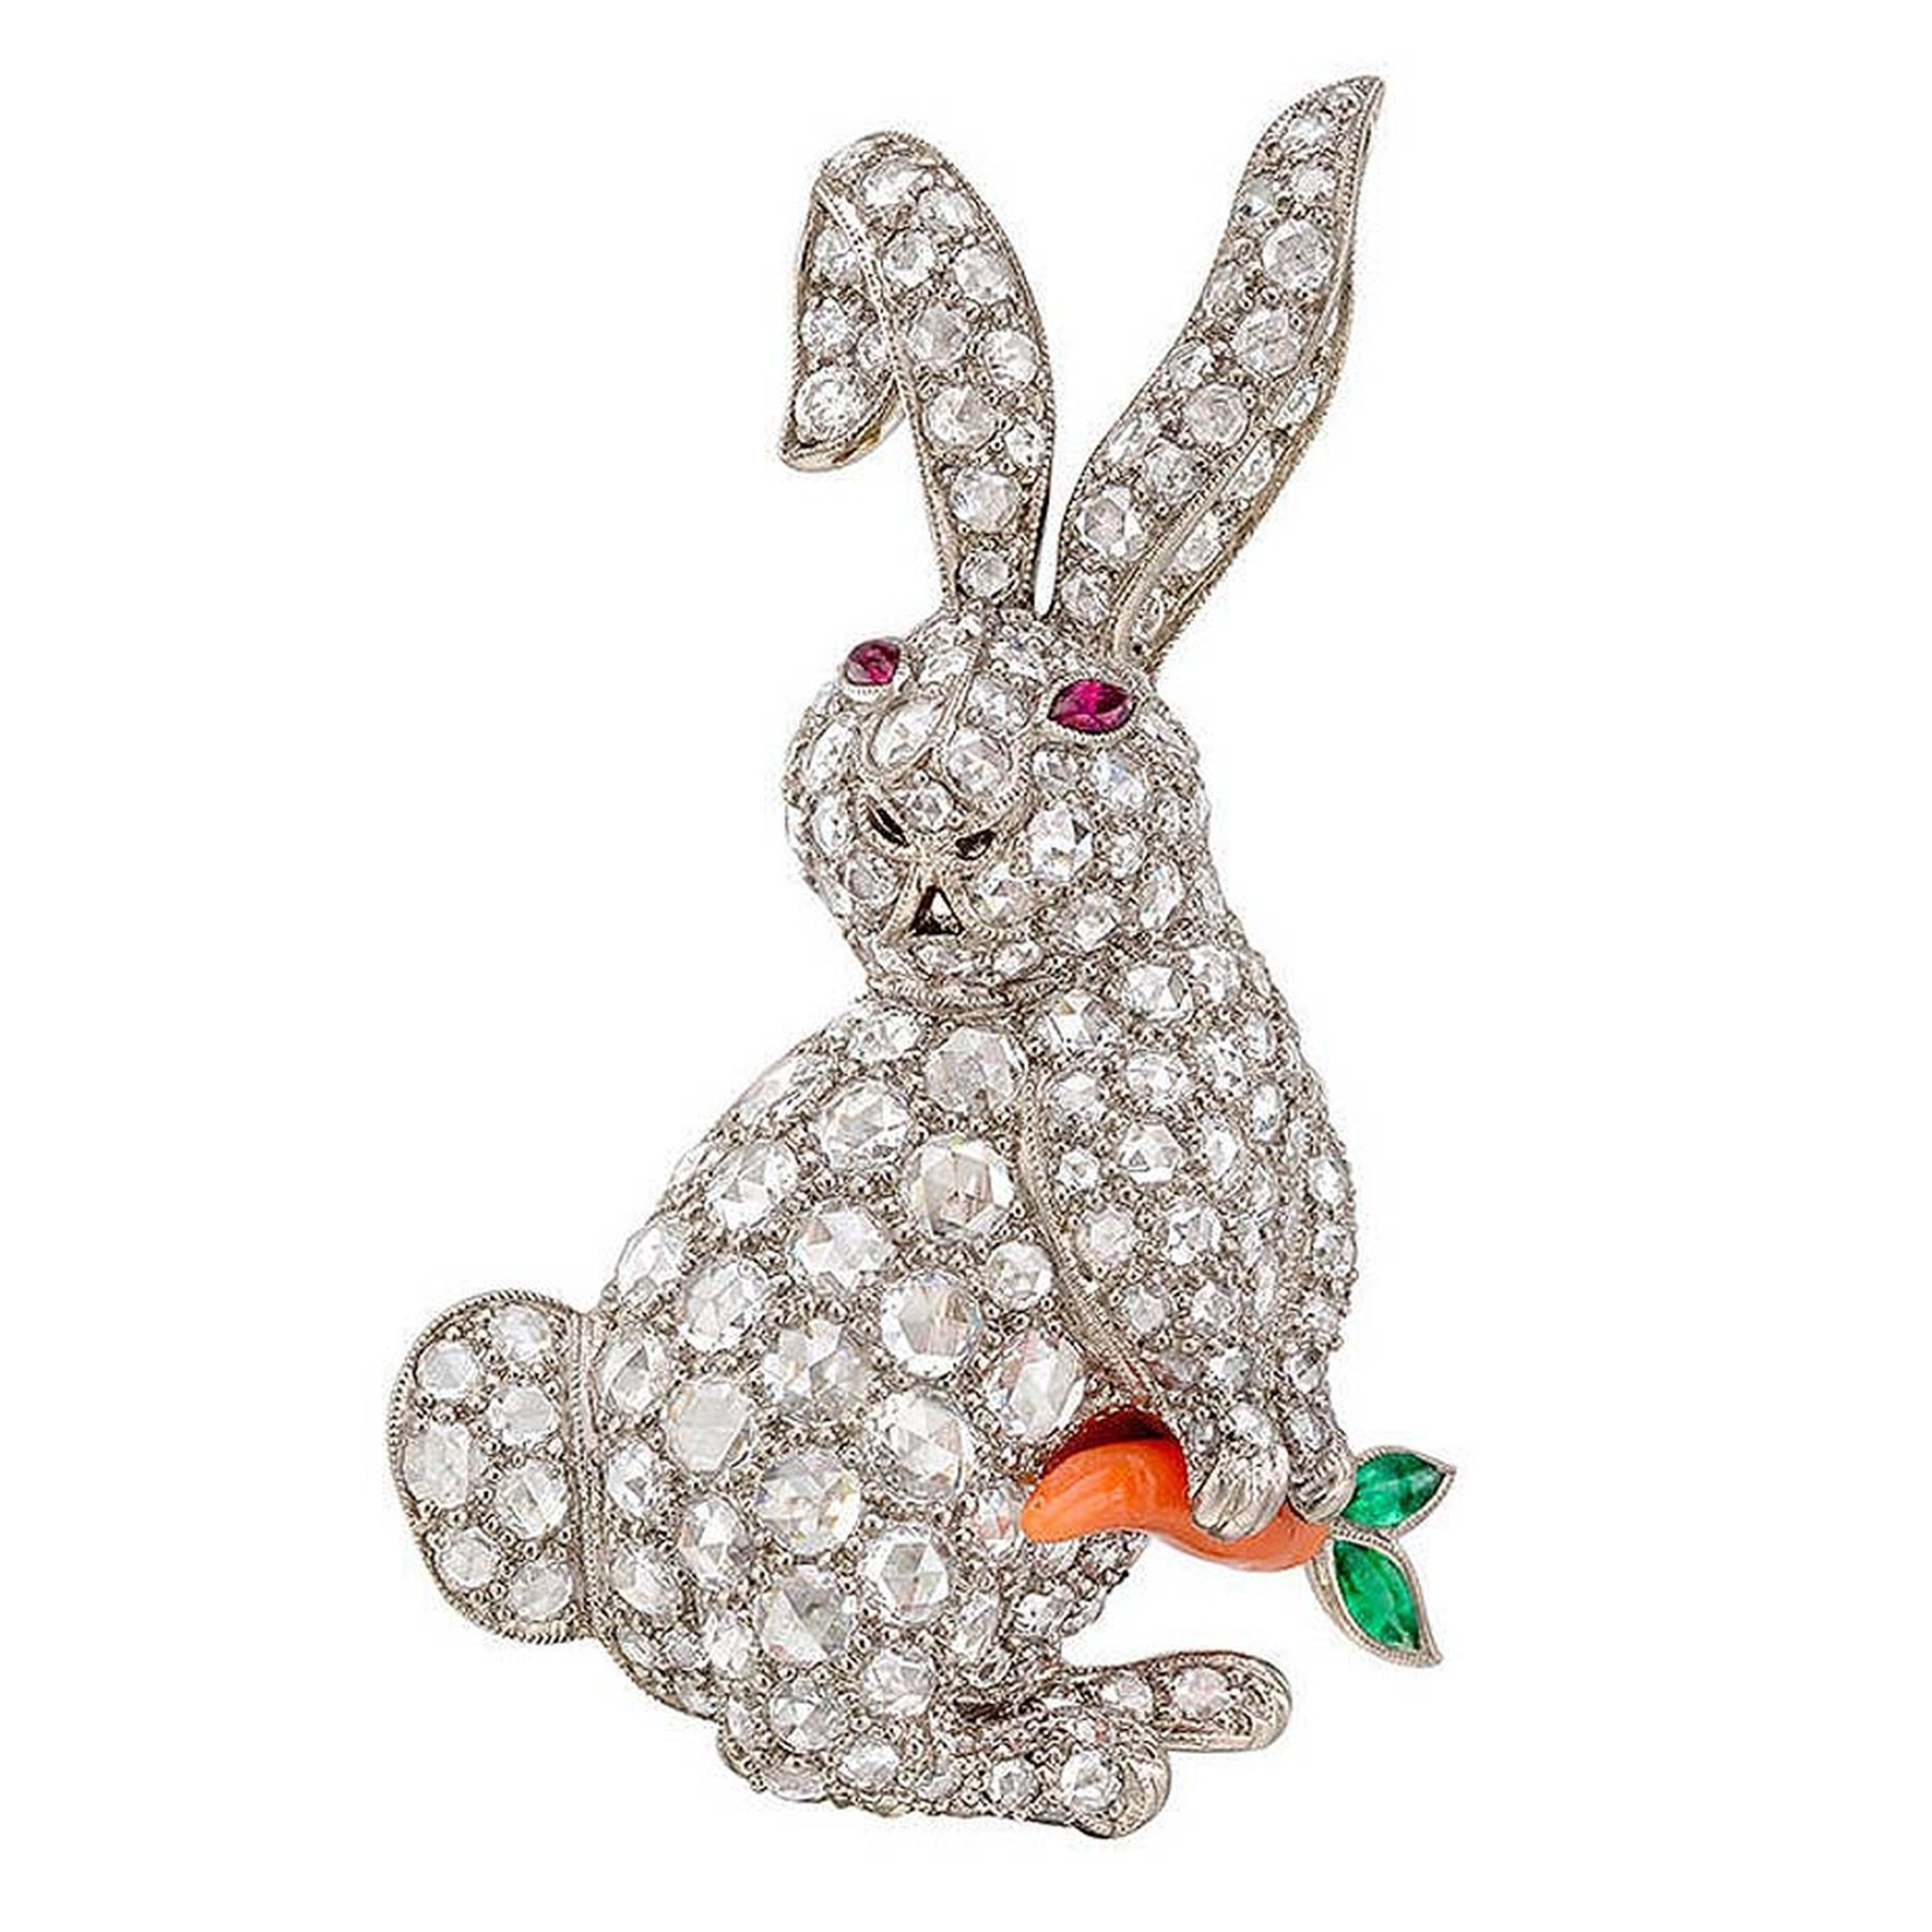 1stdibs white gold rabbit antique jewellery brooch featuring circular-cut diamonds, ruby eyes, and a carved coral carrot with emerald leaves, dates back to the 20th century.